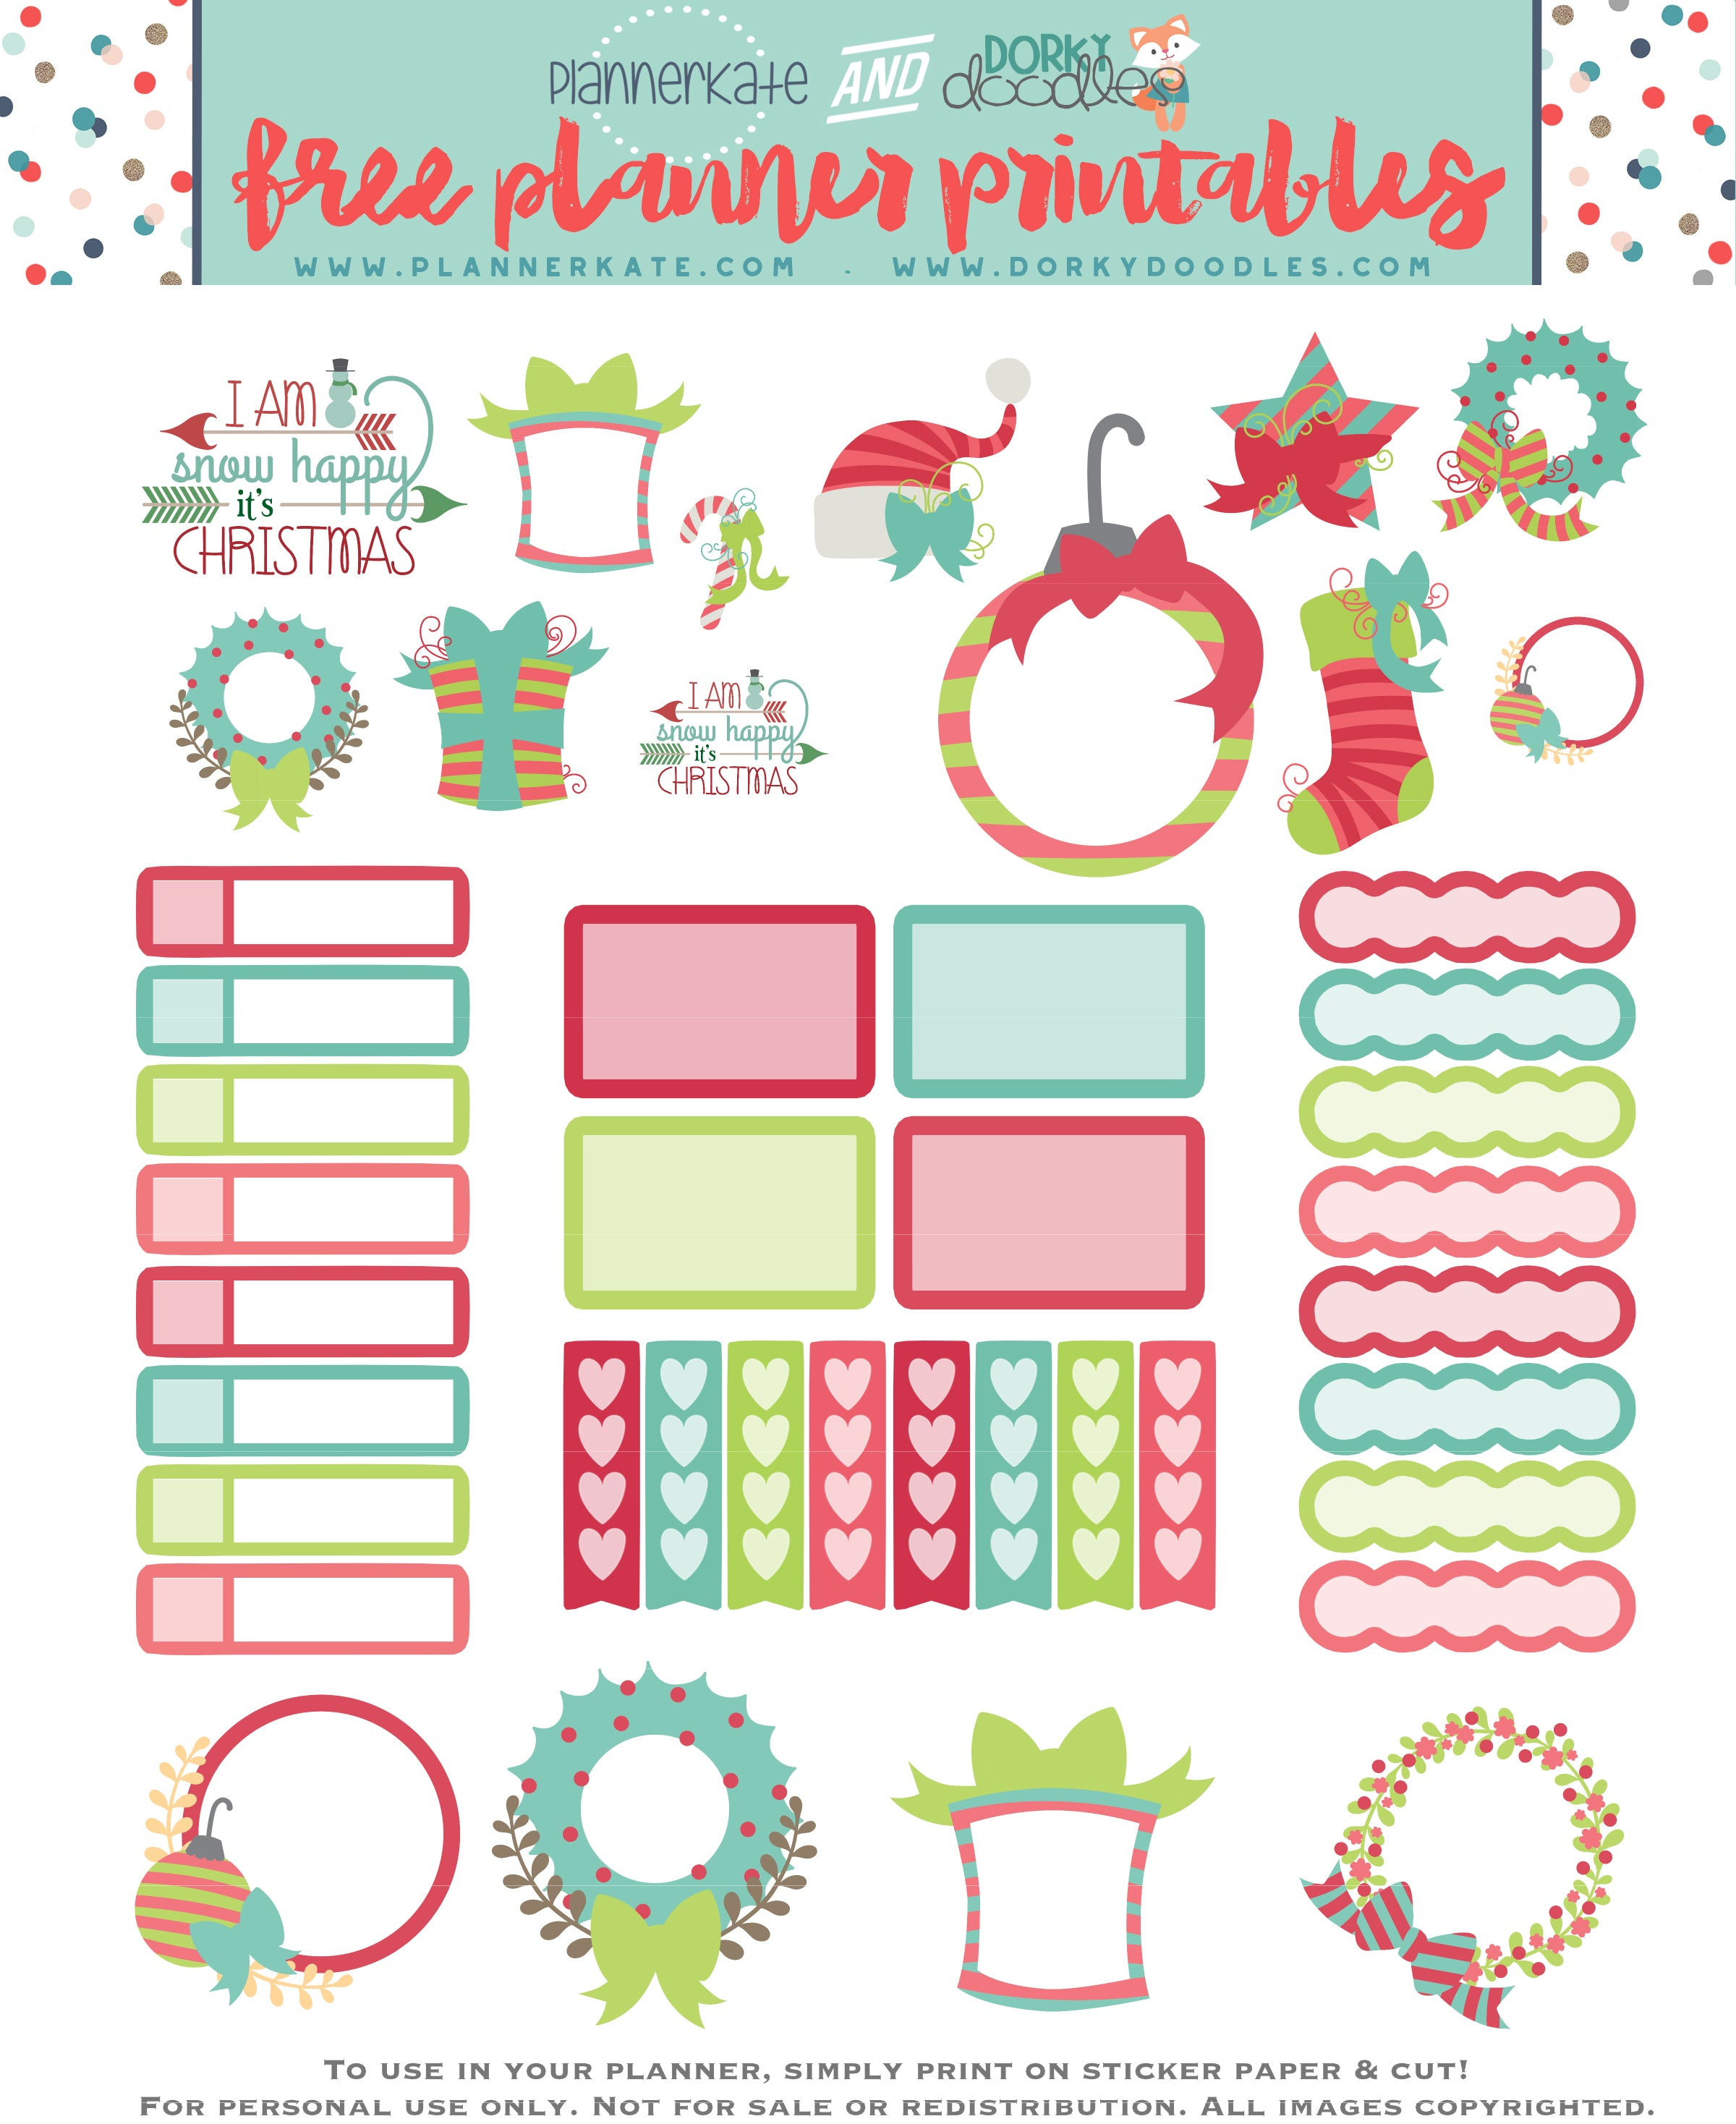 graphic regarding Free Printable Christmas Stickers named Absolutely free Printable Xmas Planner Stickers Dorky Doodles